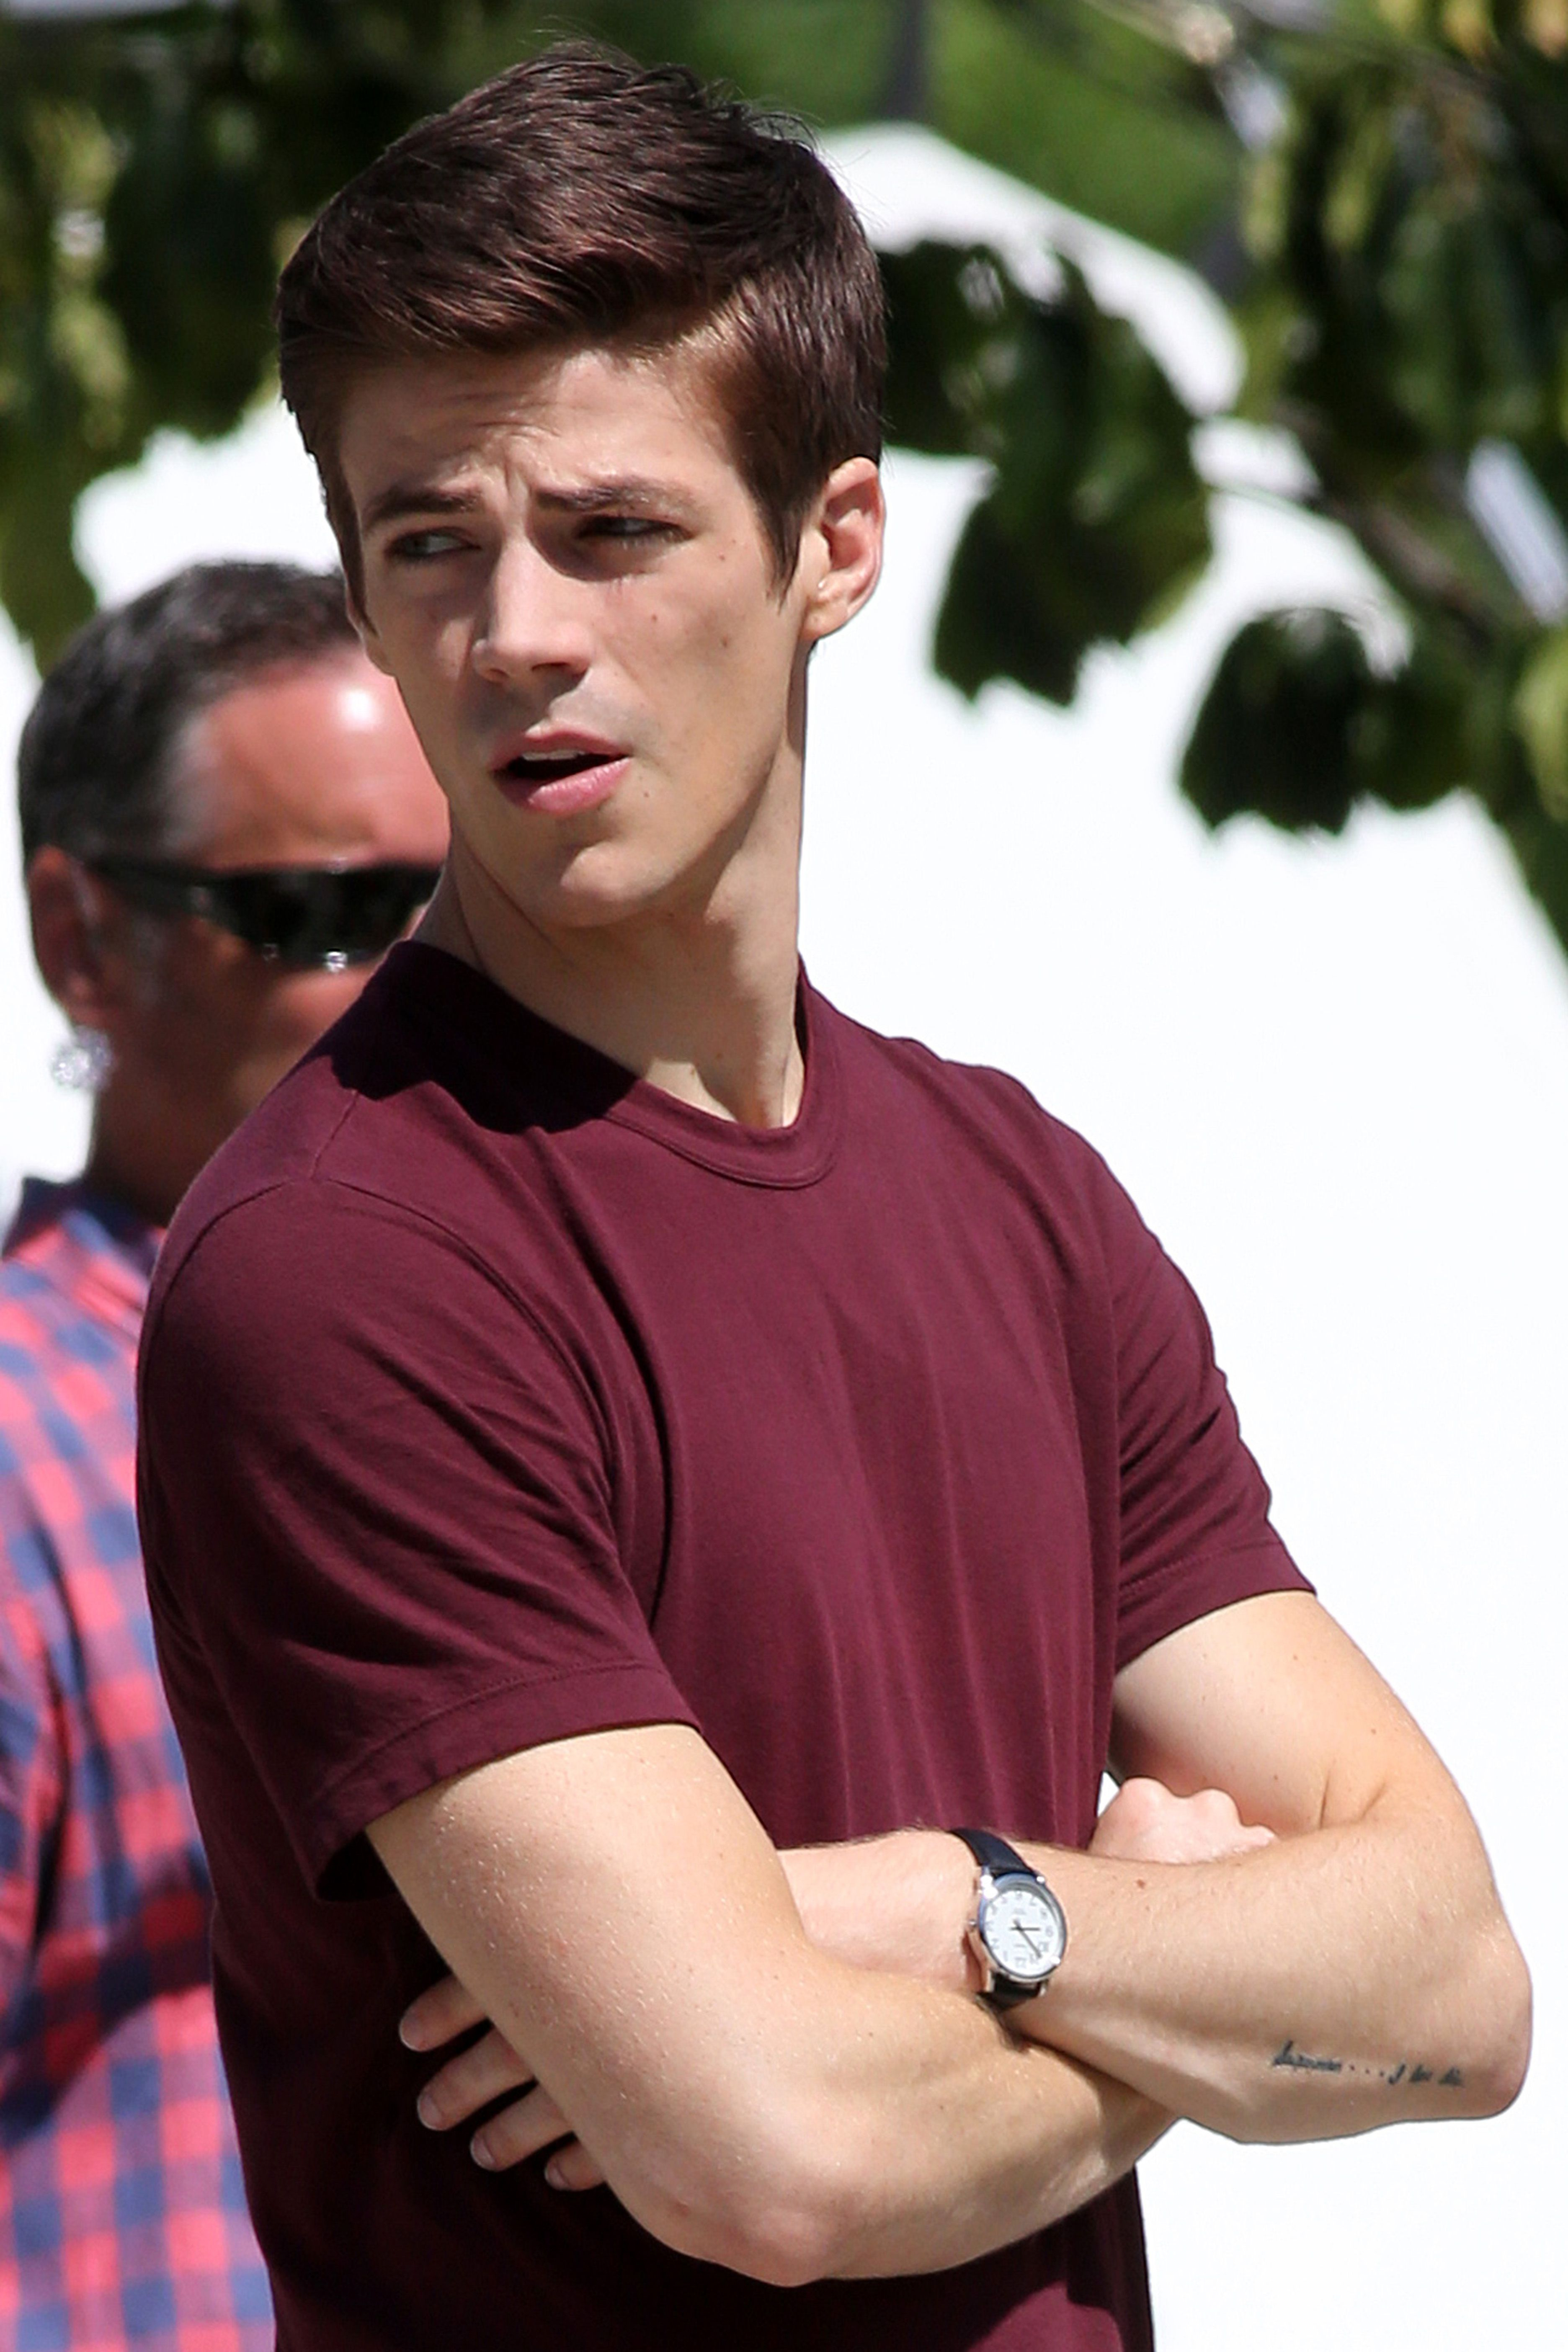 Grant gustin mcm comics pinterest grant gustin arrow and the flash shoots episode 4 in downtown vancouver canada with an arrow crossover where grant gustin and emily bett rickards meet at a park m4hsunfo Image collections